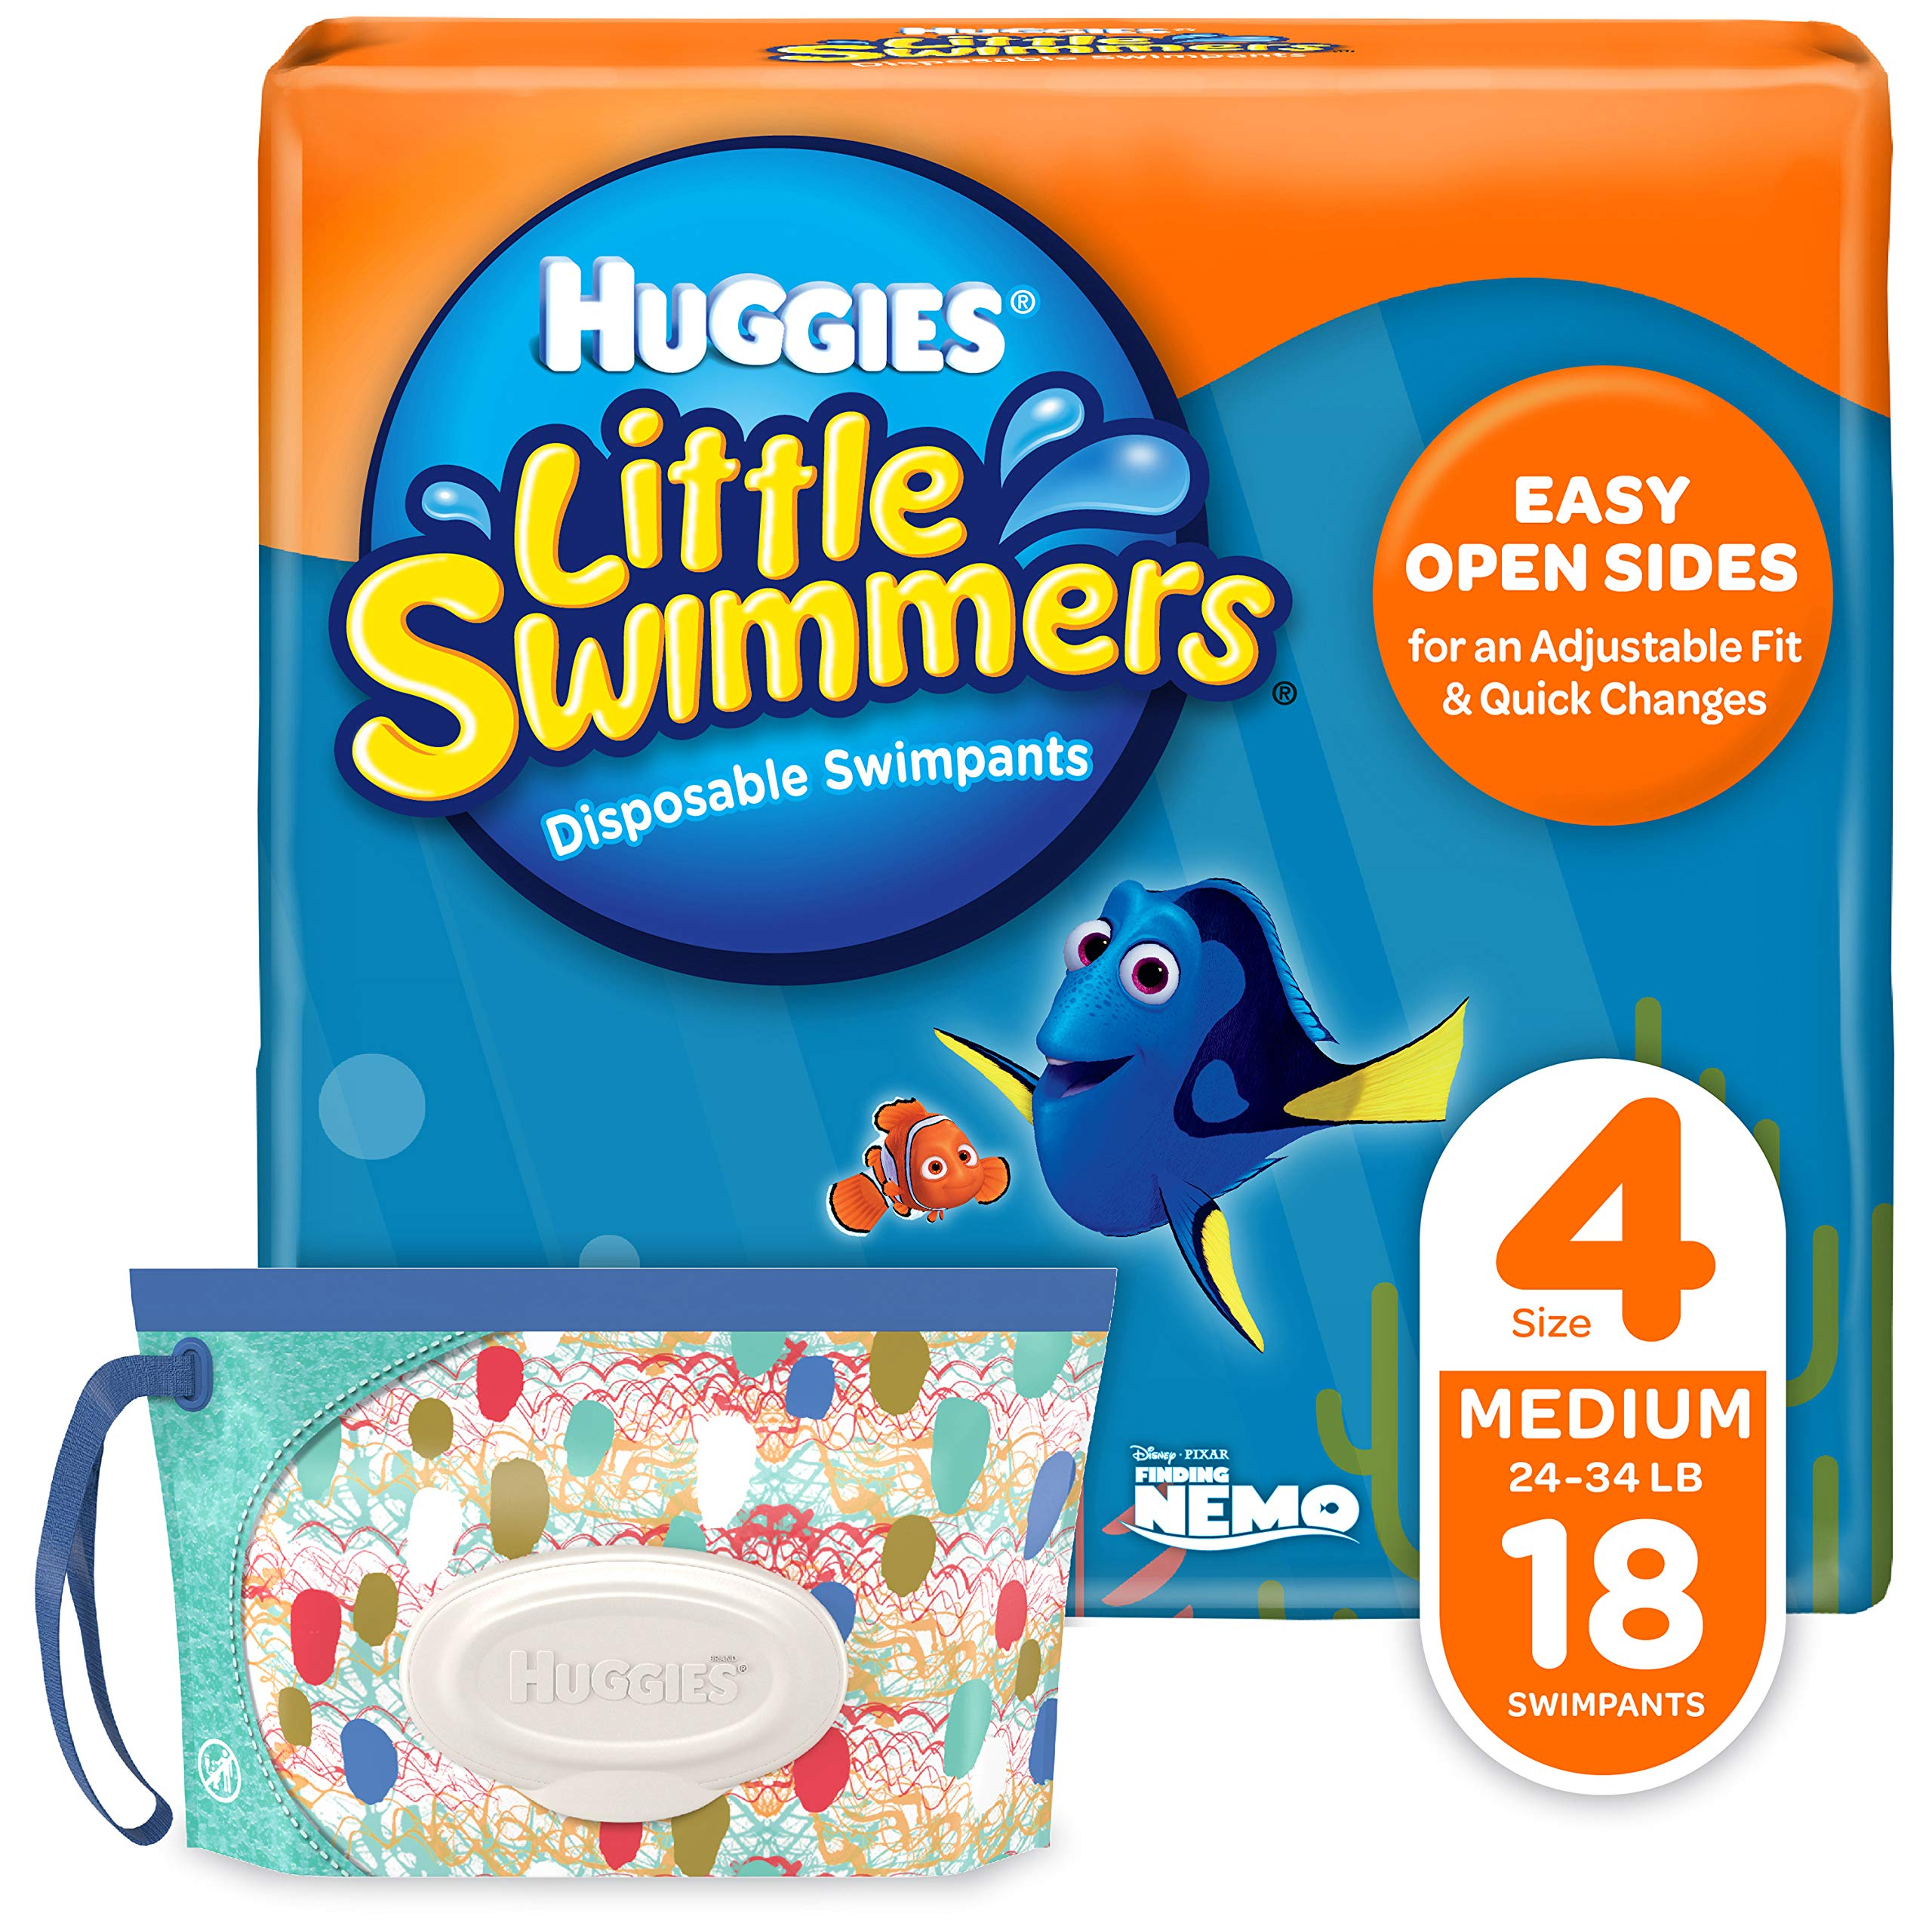 5b08ff90d Amazon.com  Huggies Little Swimmers Disposable Swimpants